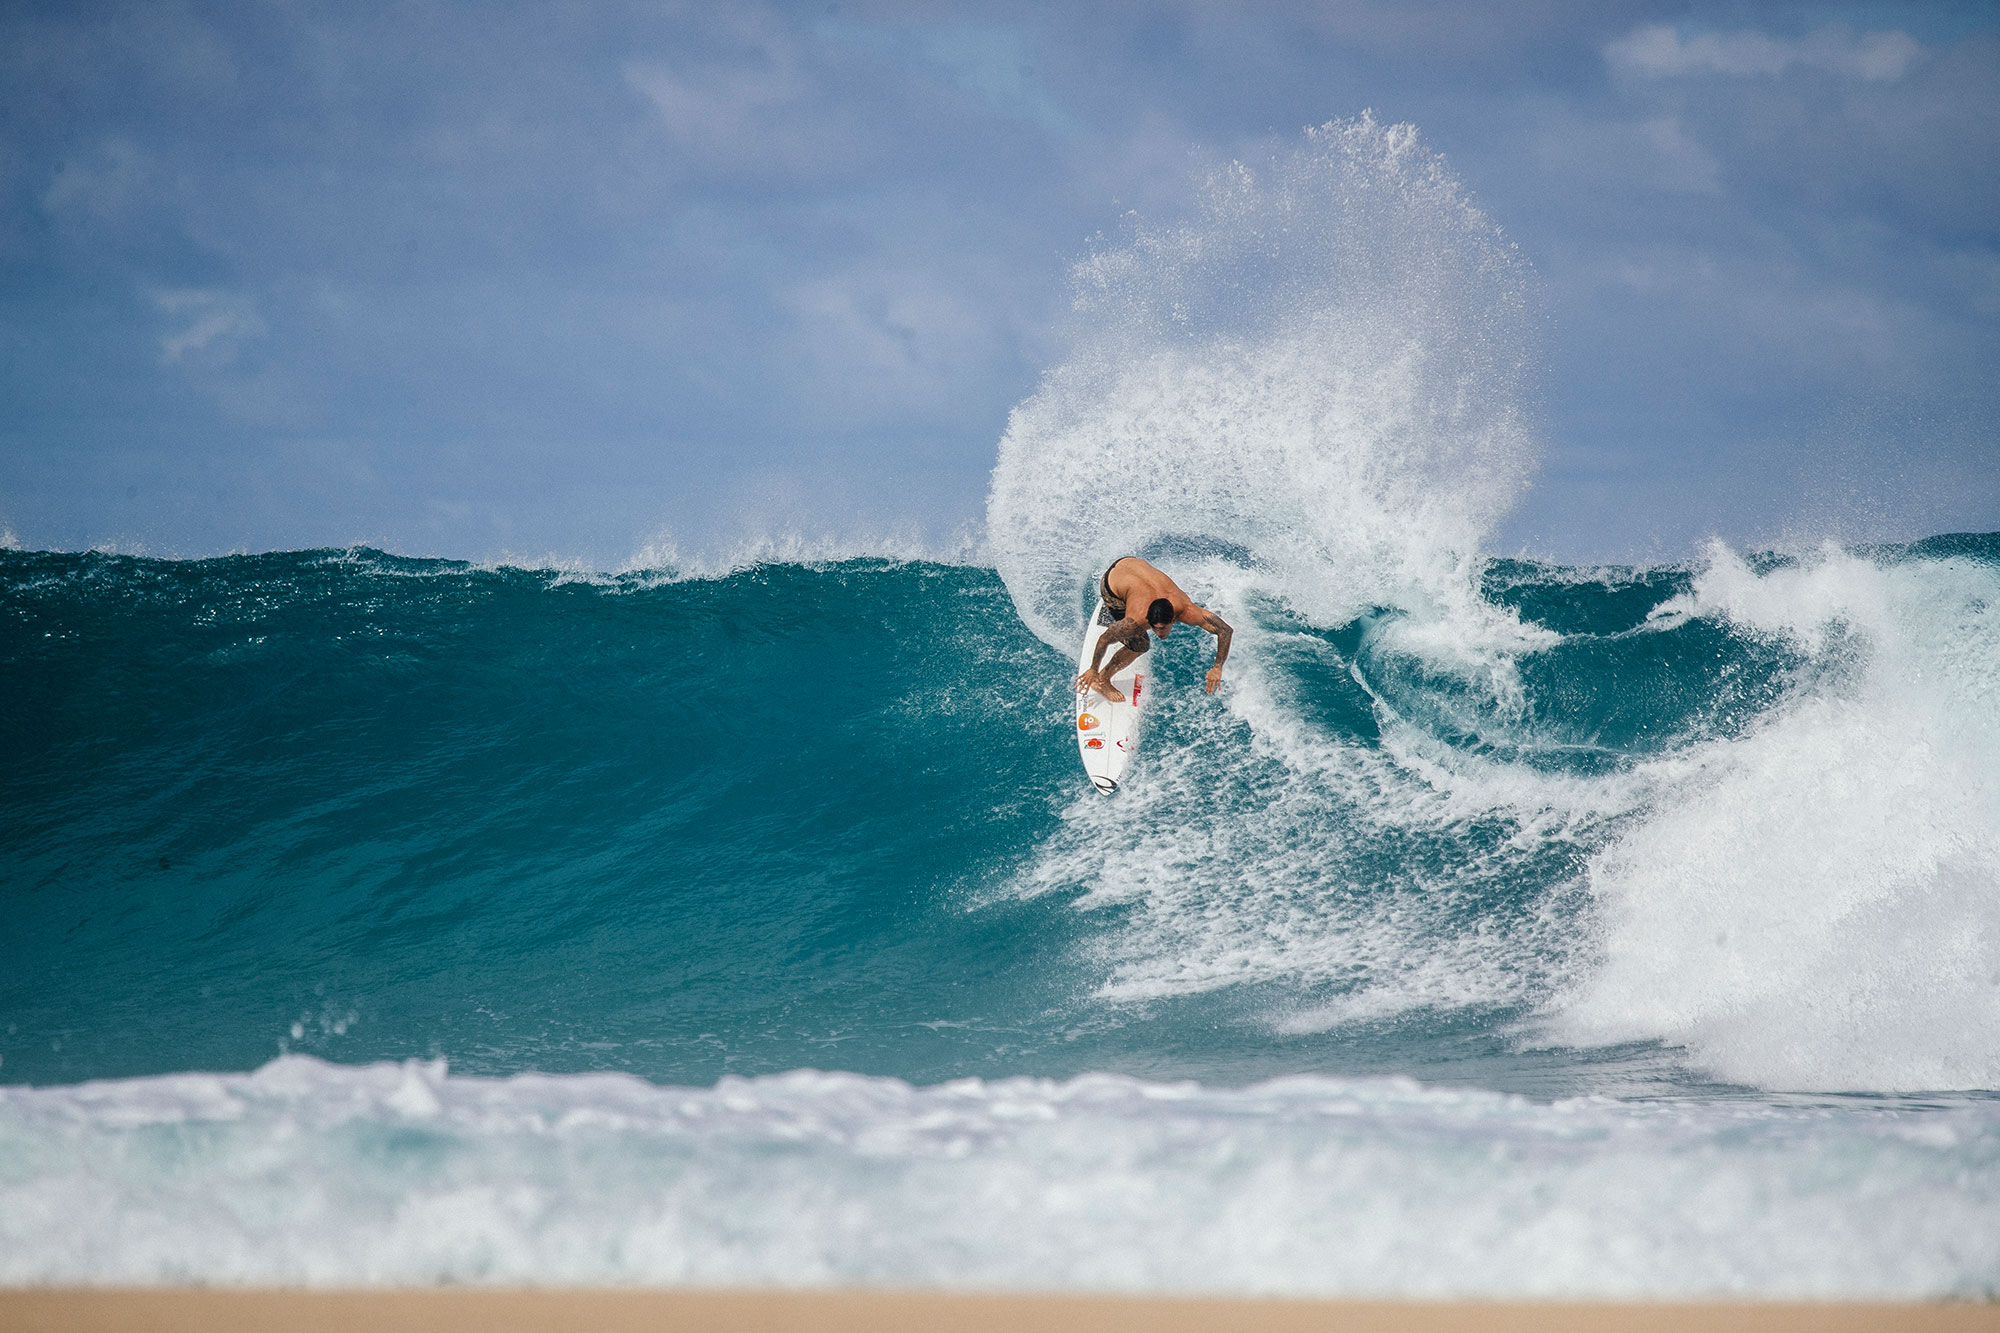 In less than a decade, Gabriel Medina and the rest of the Brazilian Storm have redefined Brazil's place in pro surfing